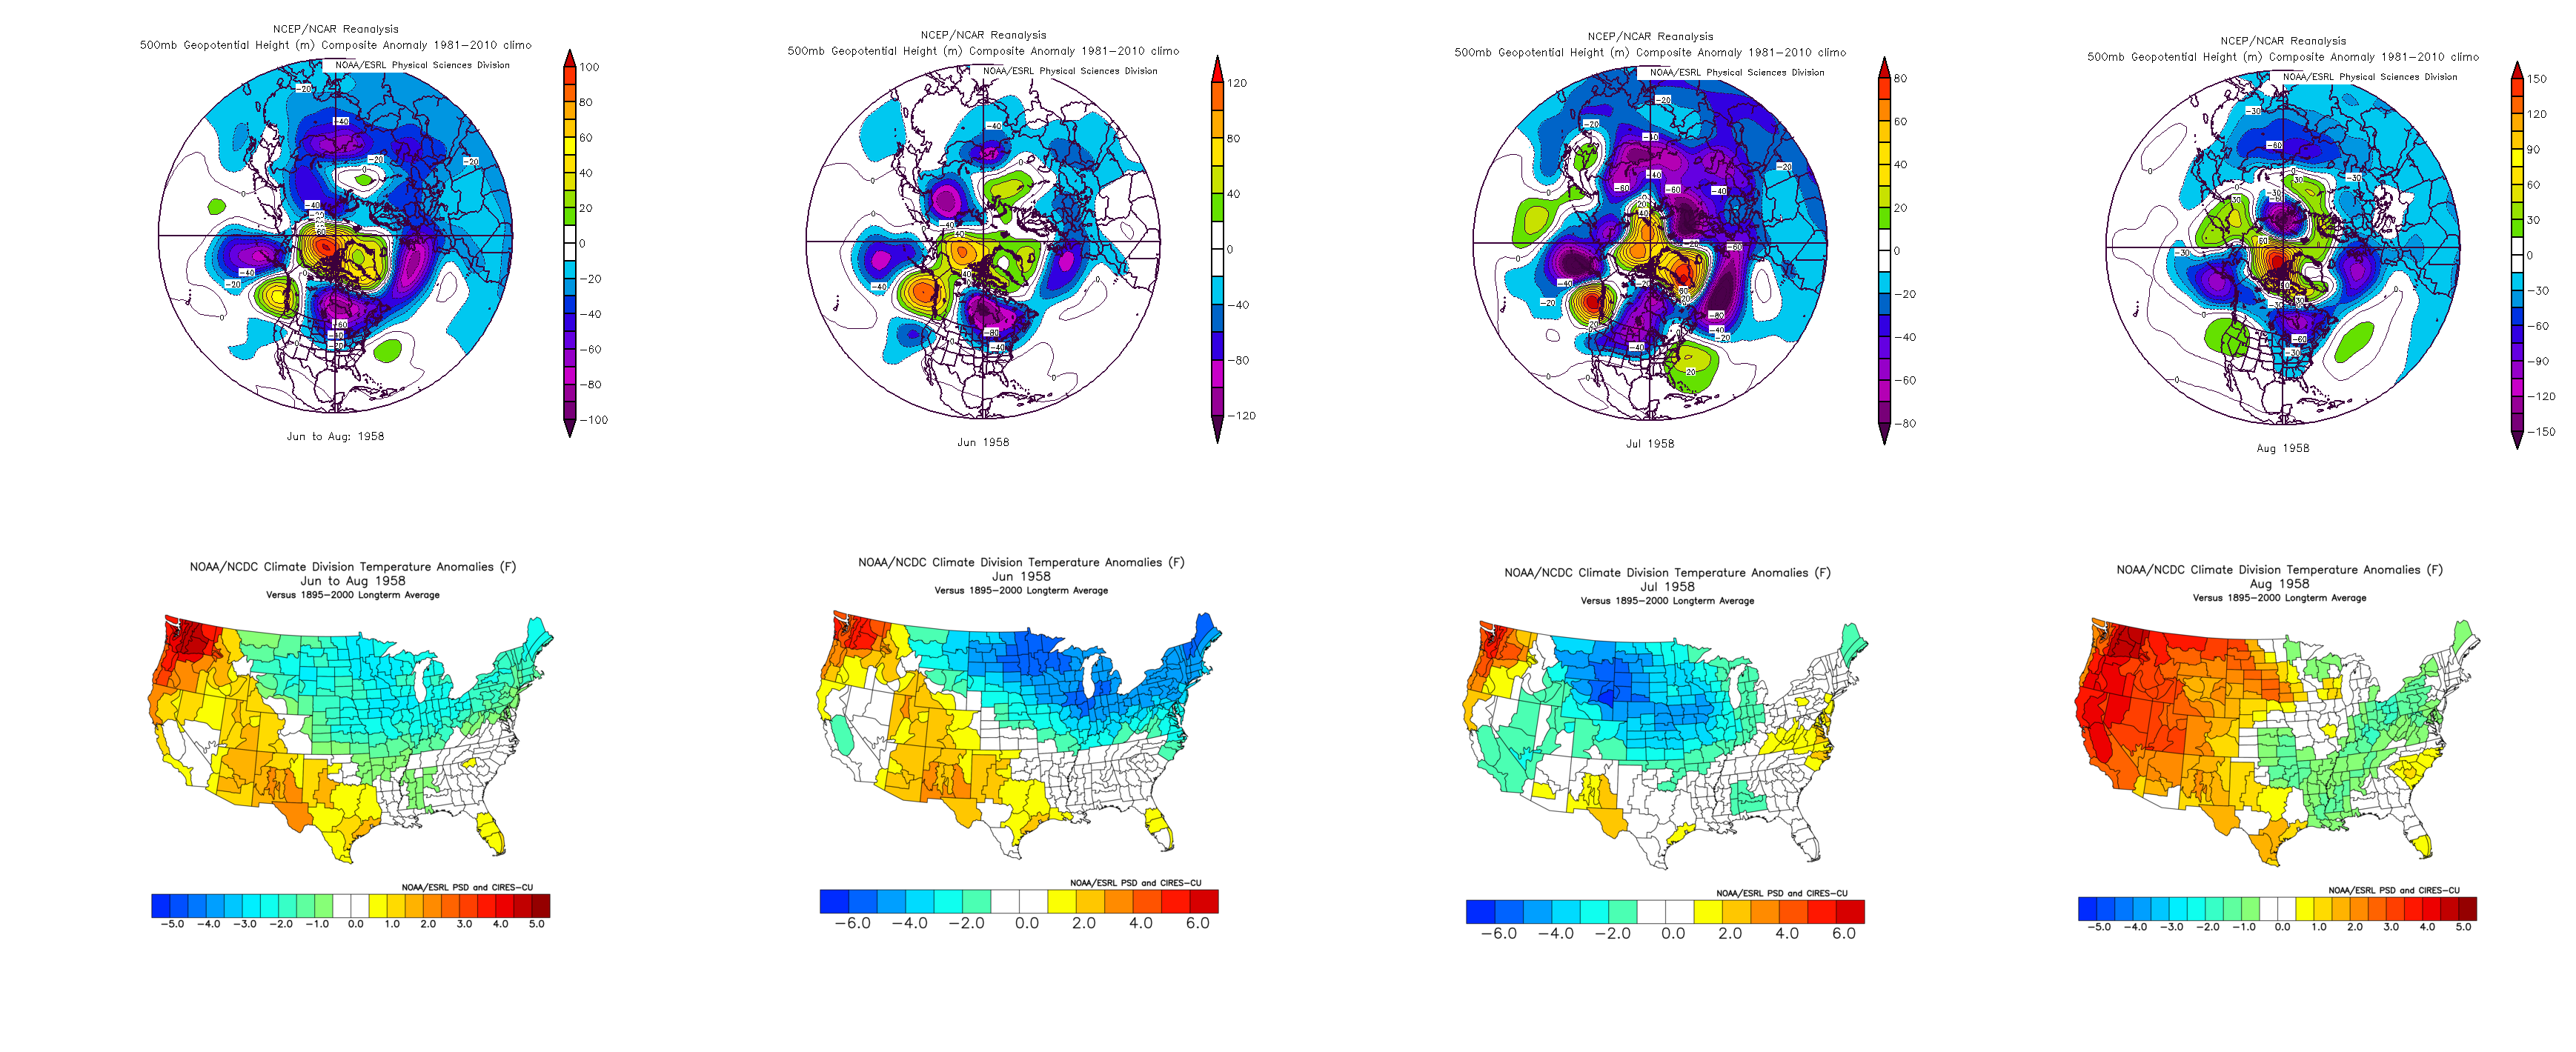 1958 500mb mean height anomalies and temperature anomalies for each summer month